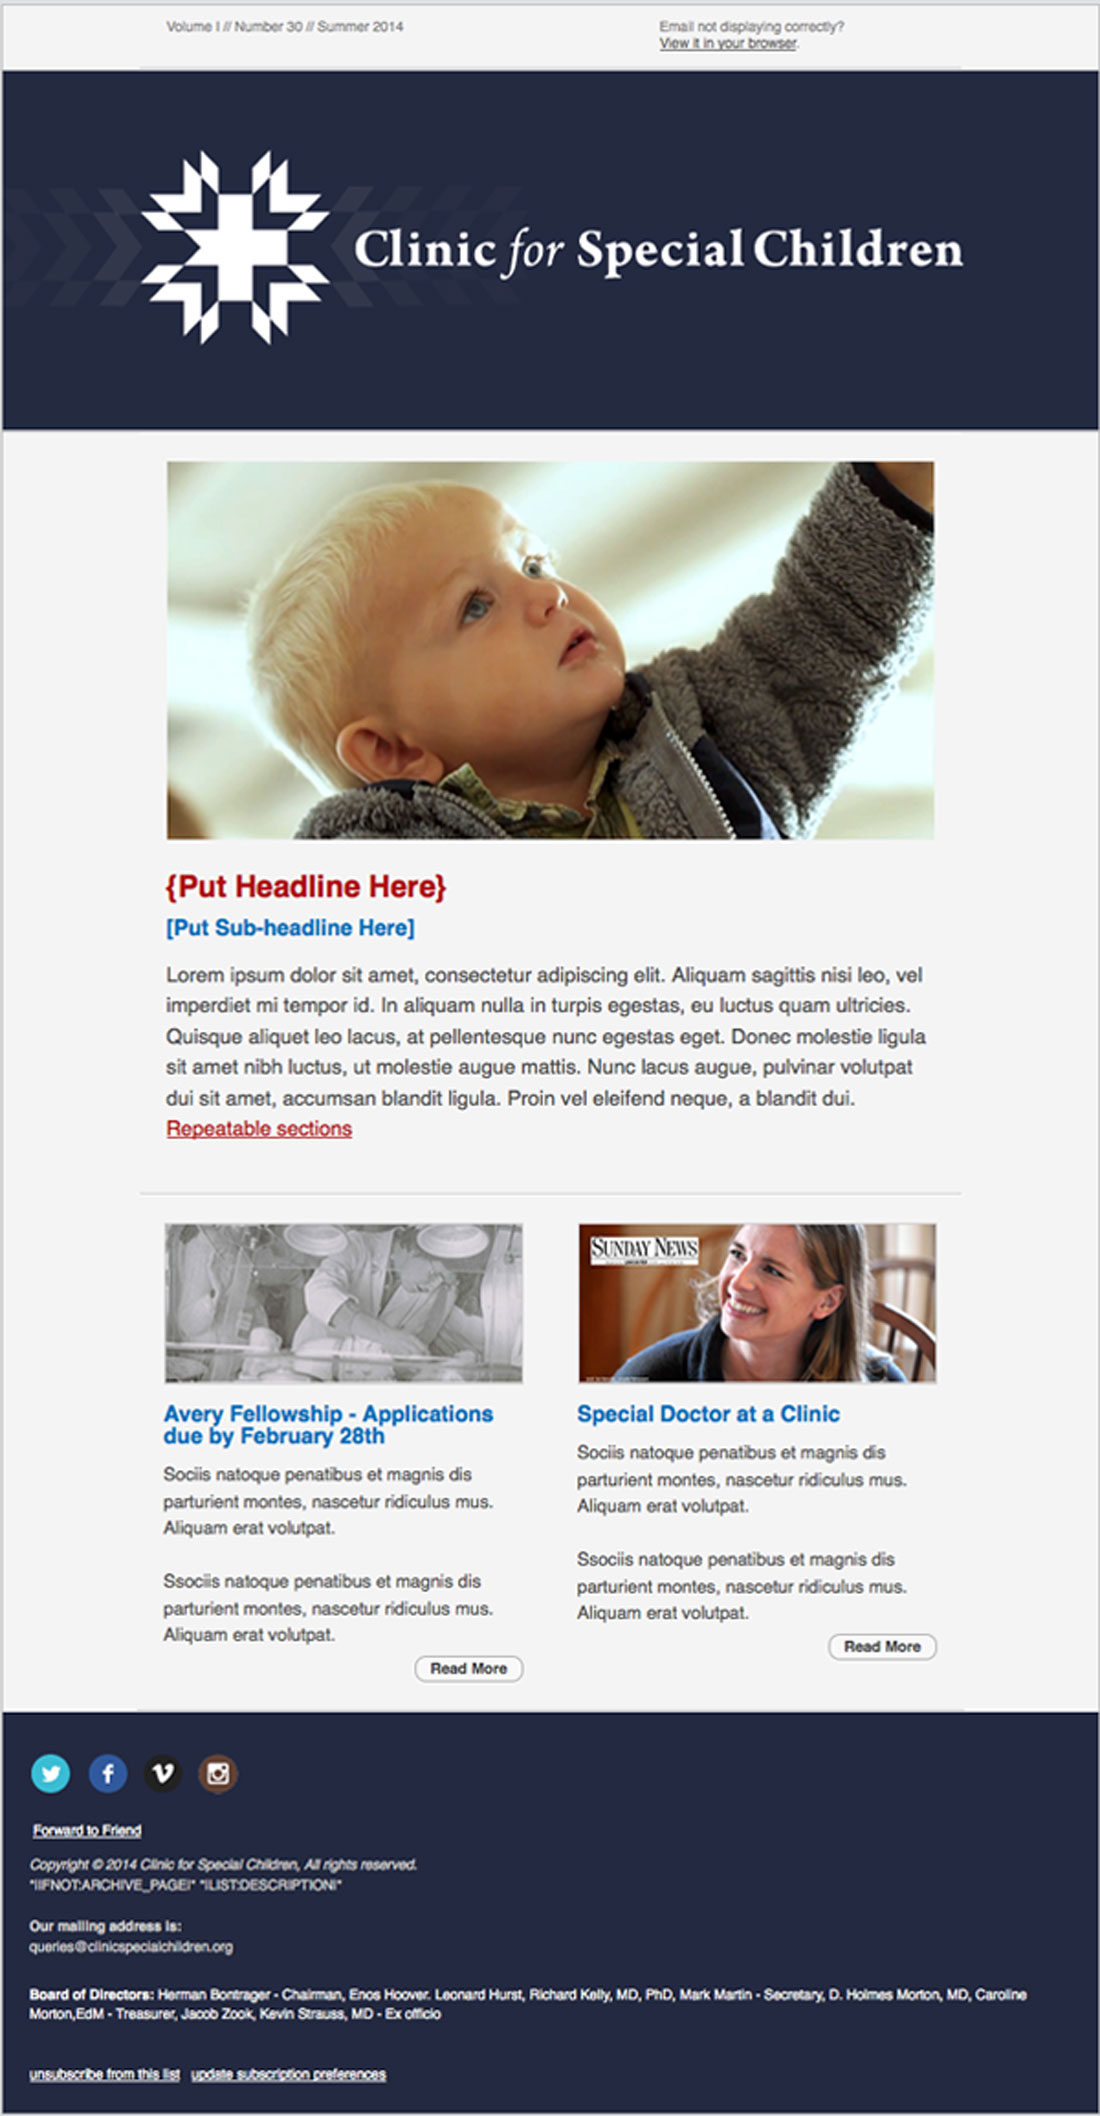 Email newsletter full length